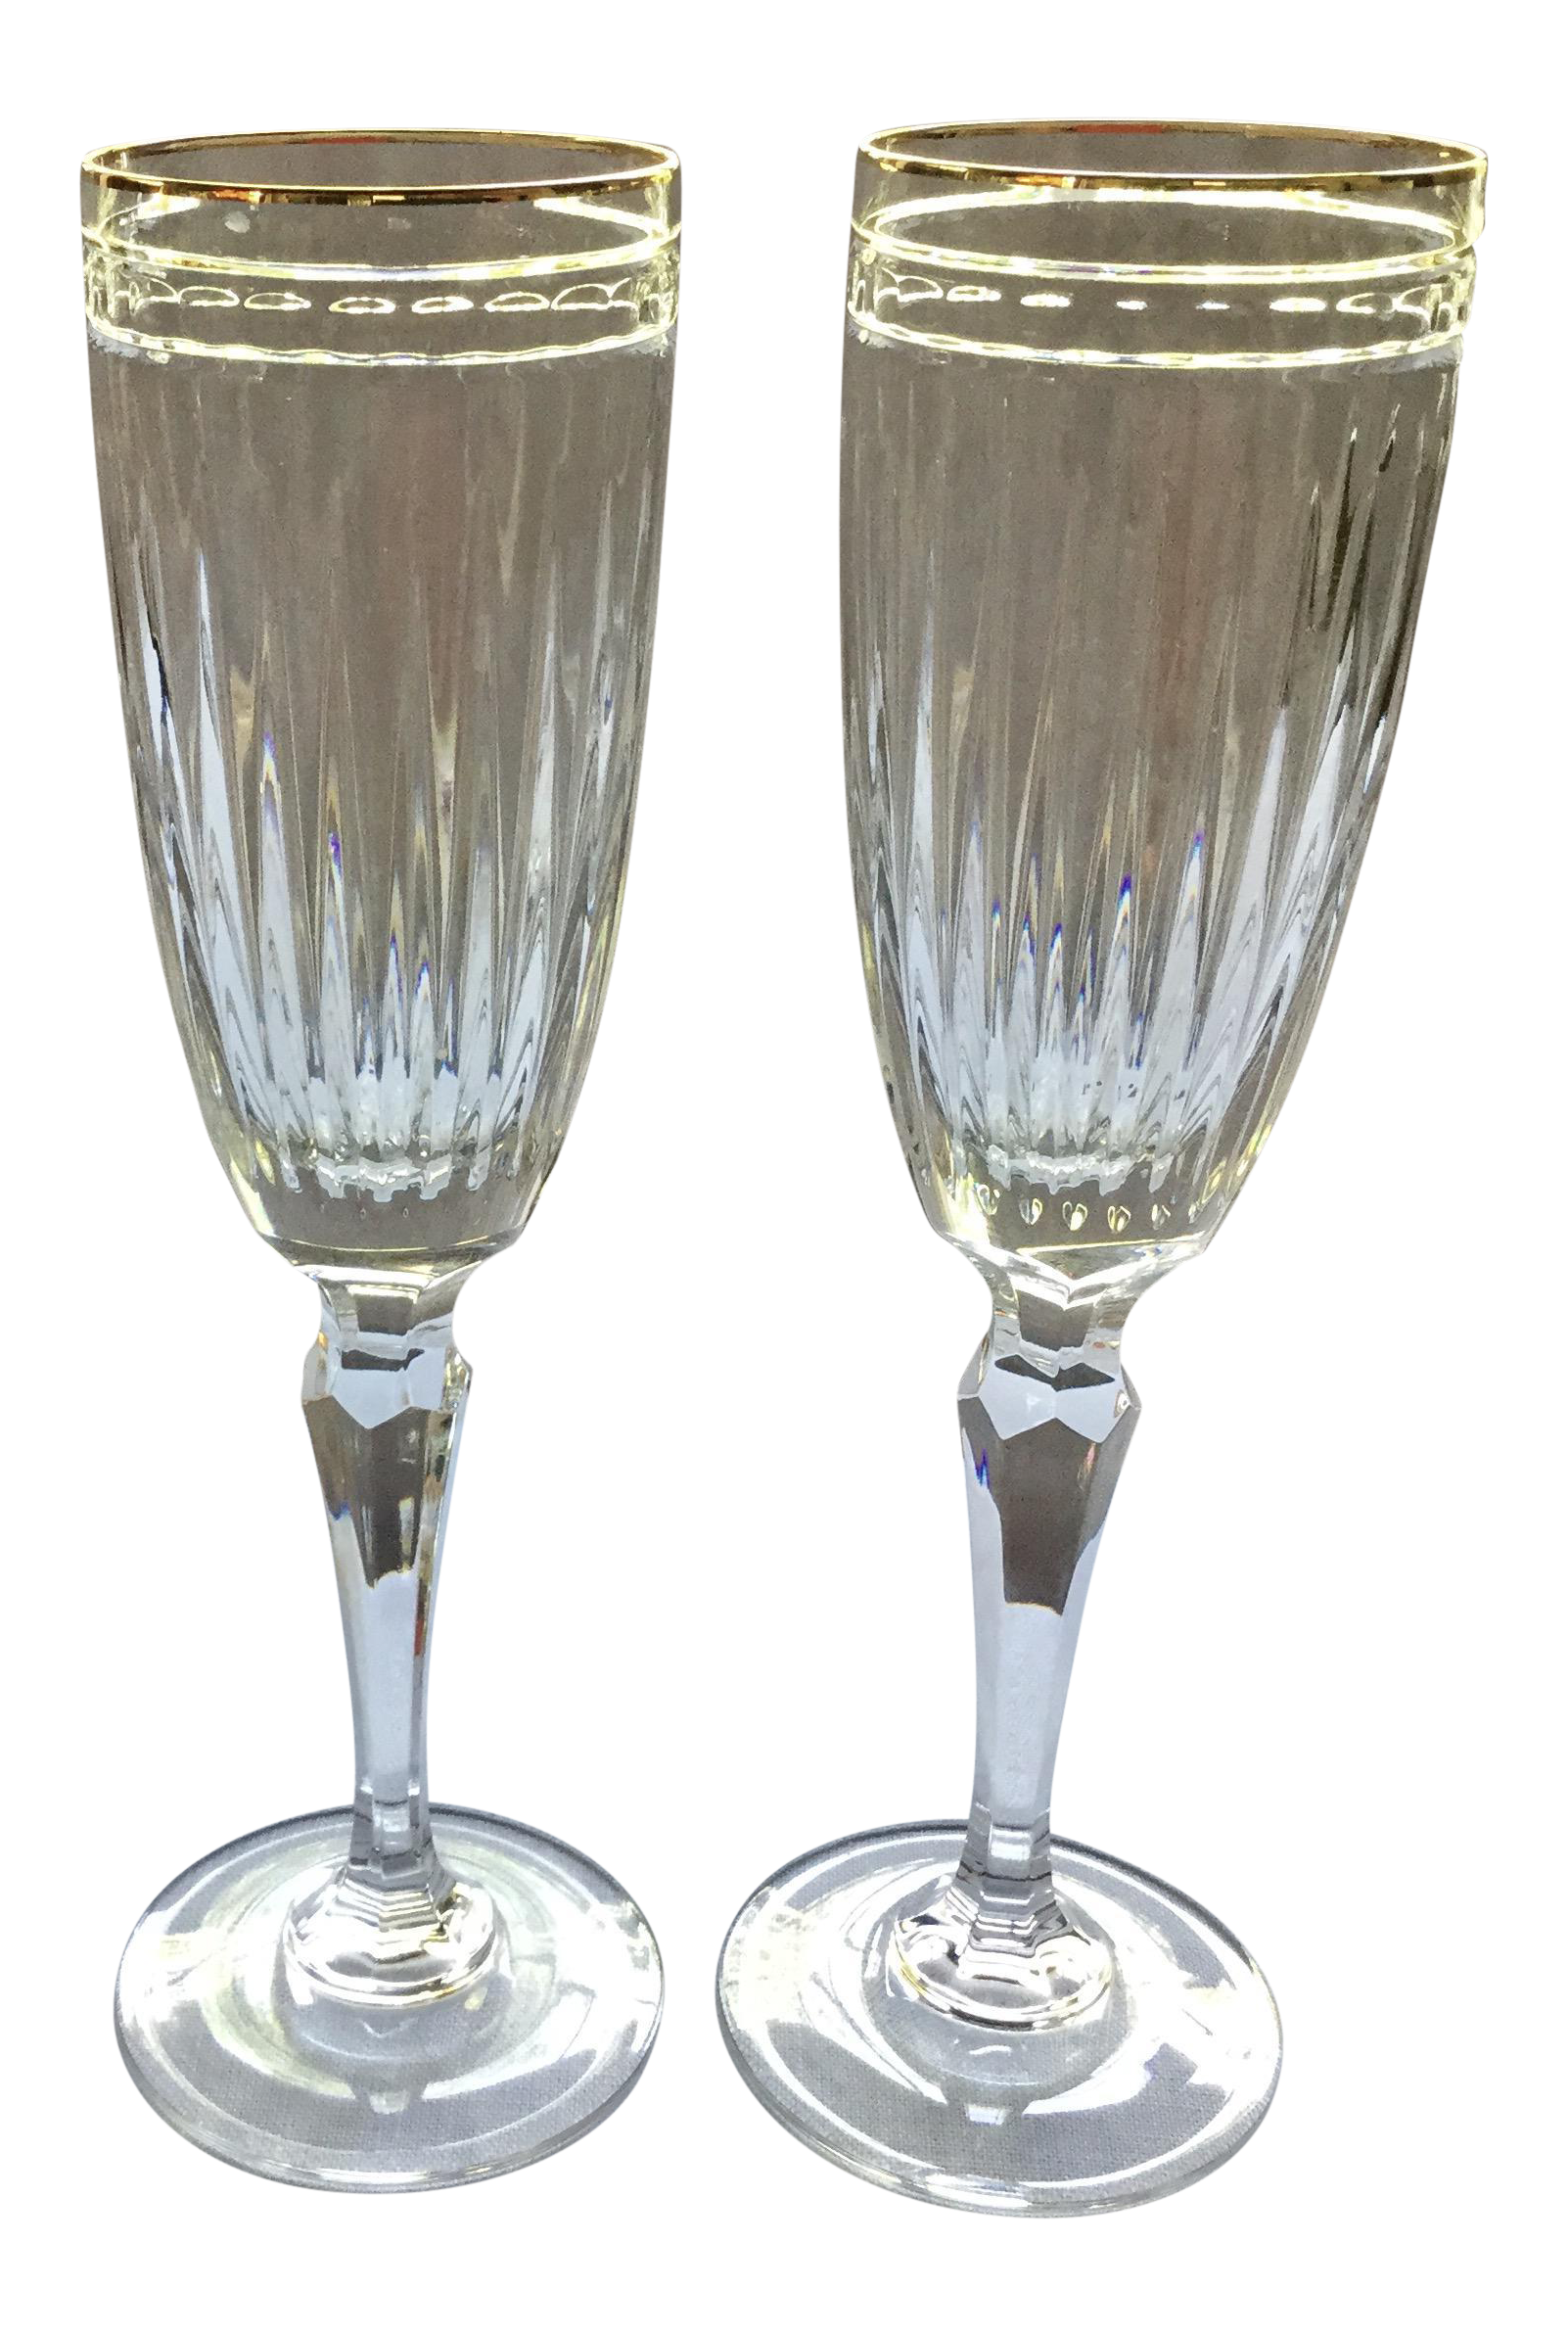 waterford crystal champagne flutes a pair - Waterford Champagne Flutes